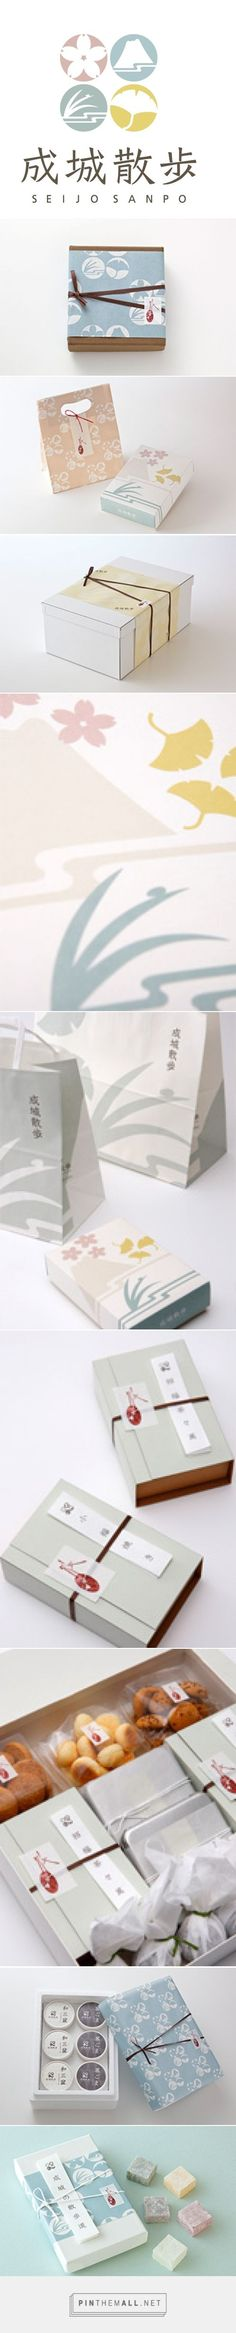 SEIJO SANPO   WORKS   AWATSUJI design curated by Packaging Diva PD. Yummy packaging.